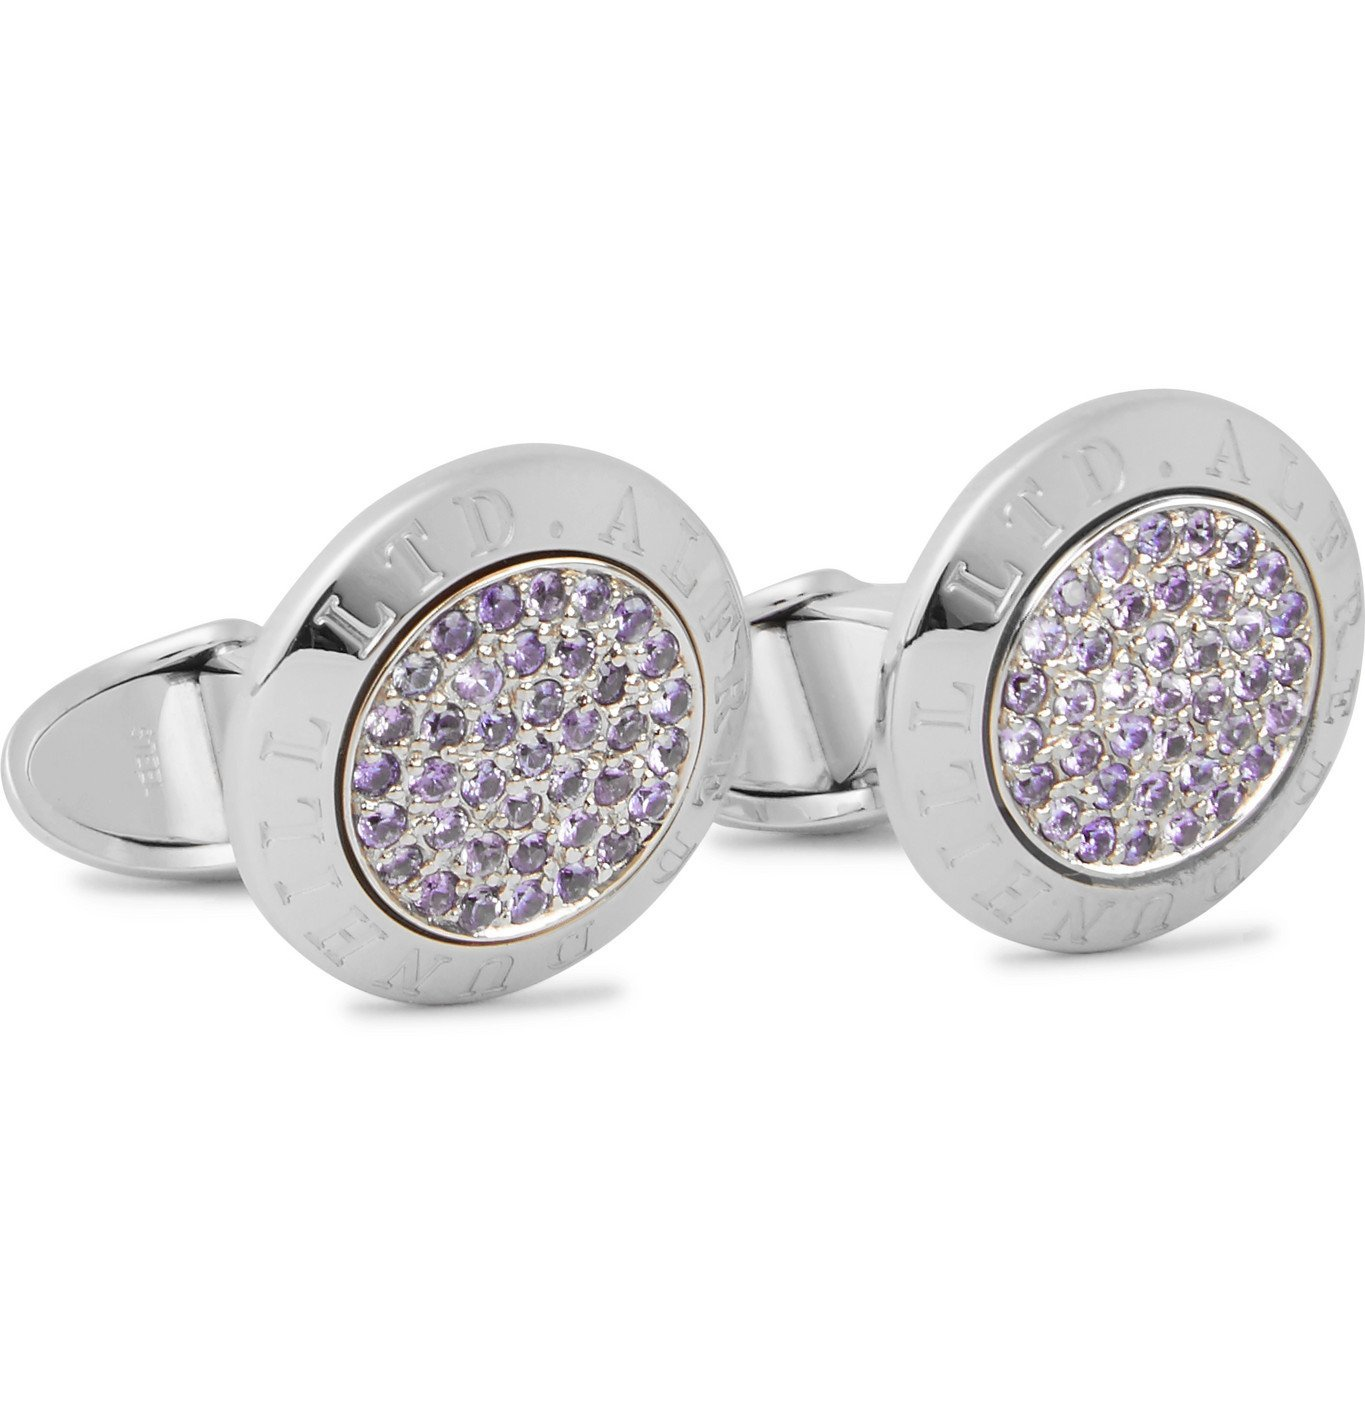 DUNHILL - Alfred Dunhill White Gold and Sapphire Cufflinks - White gold